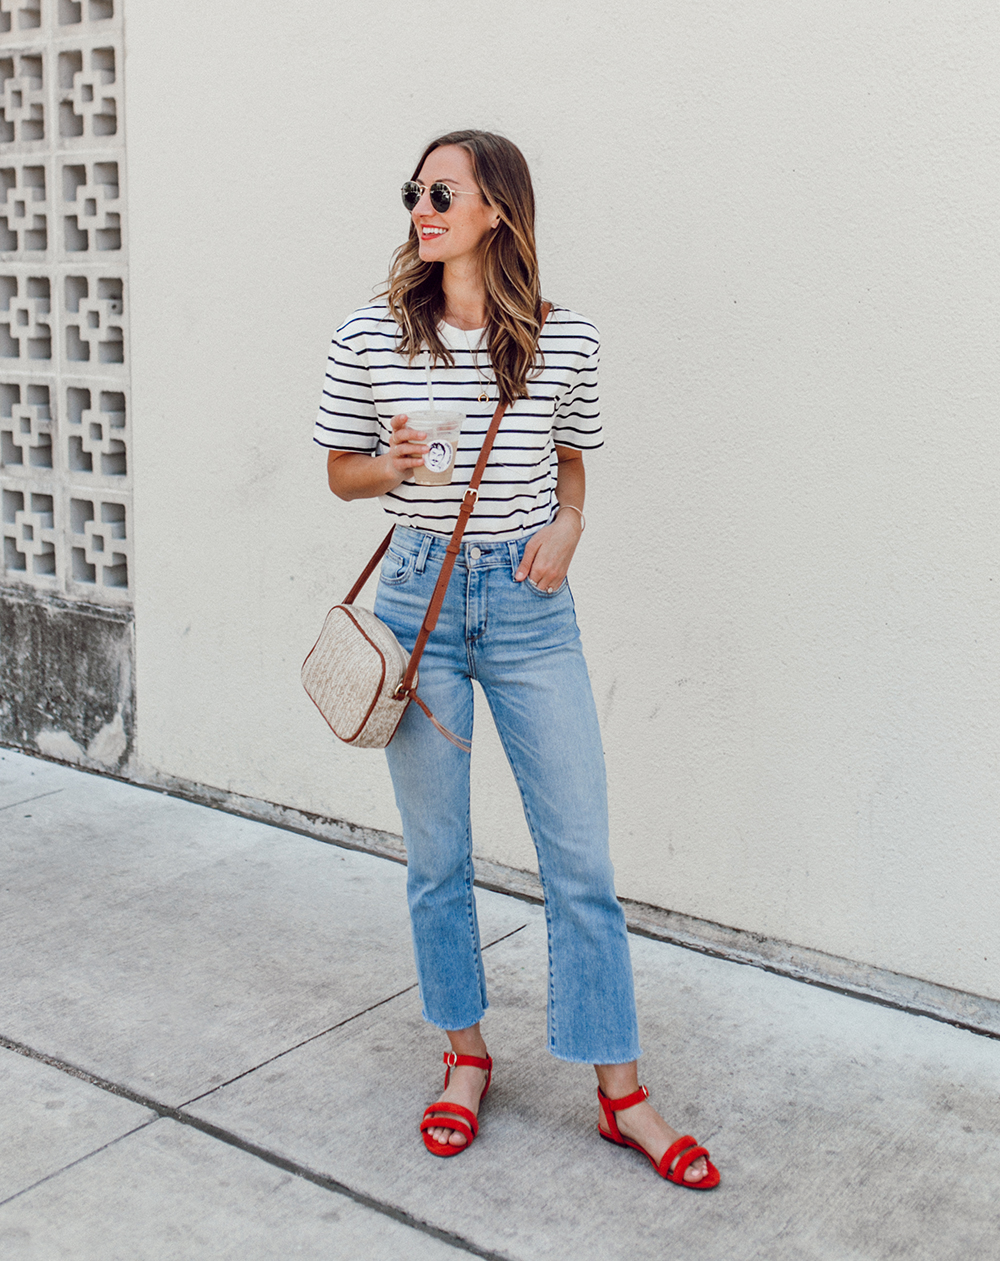 livvyland-blog-olivia-watson-sole-society-red-sandal-flats-spring-summer-outfit-idea-style-austin-texas-fashion-blogger-striped-shirt-6